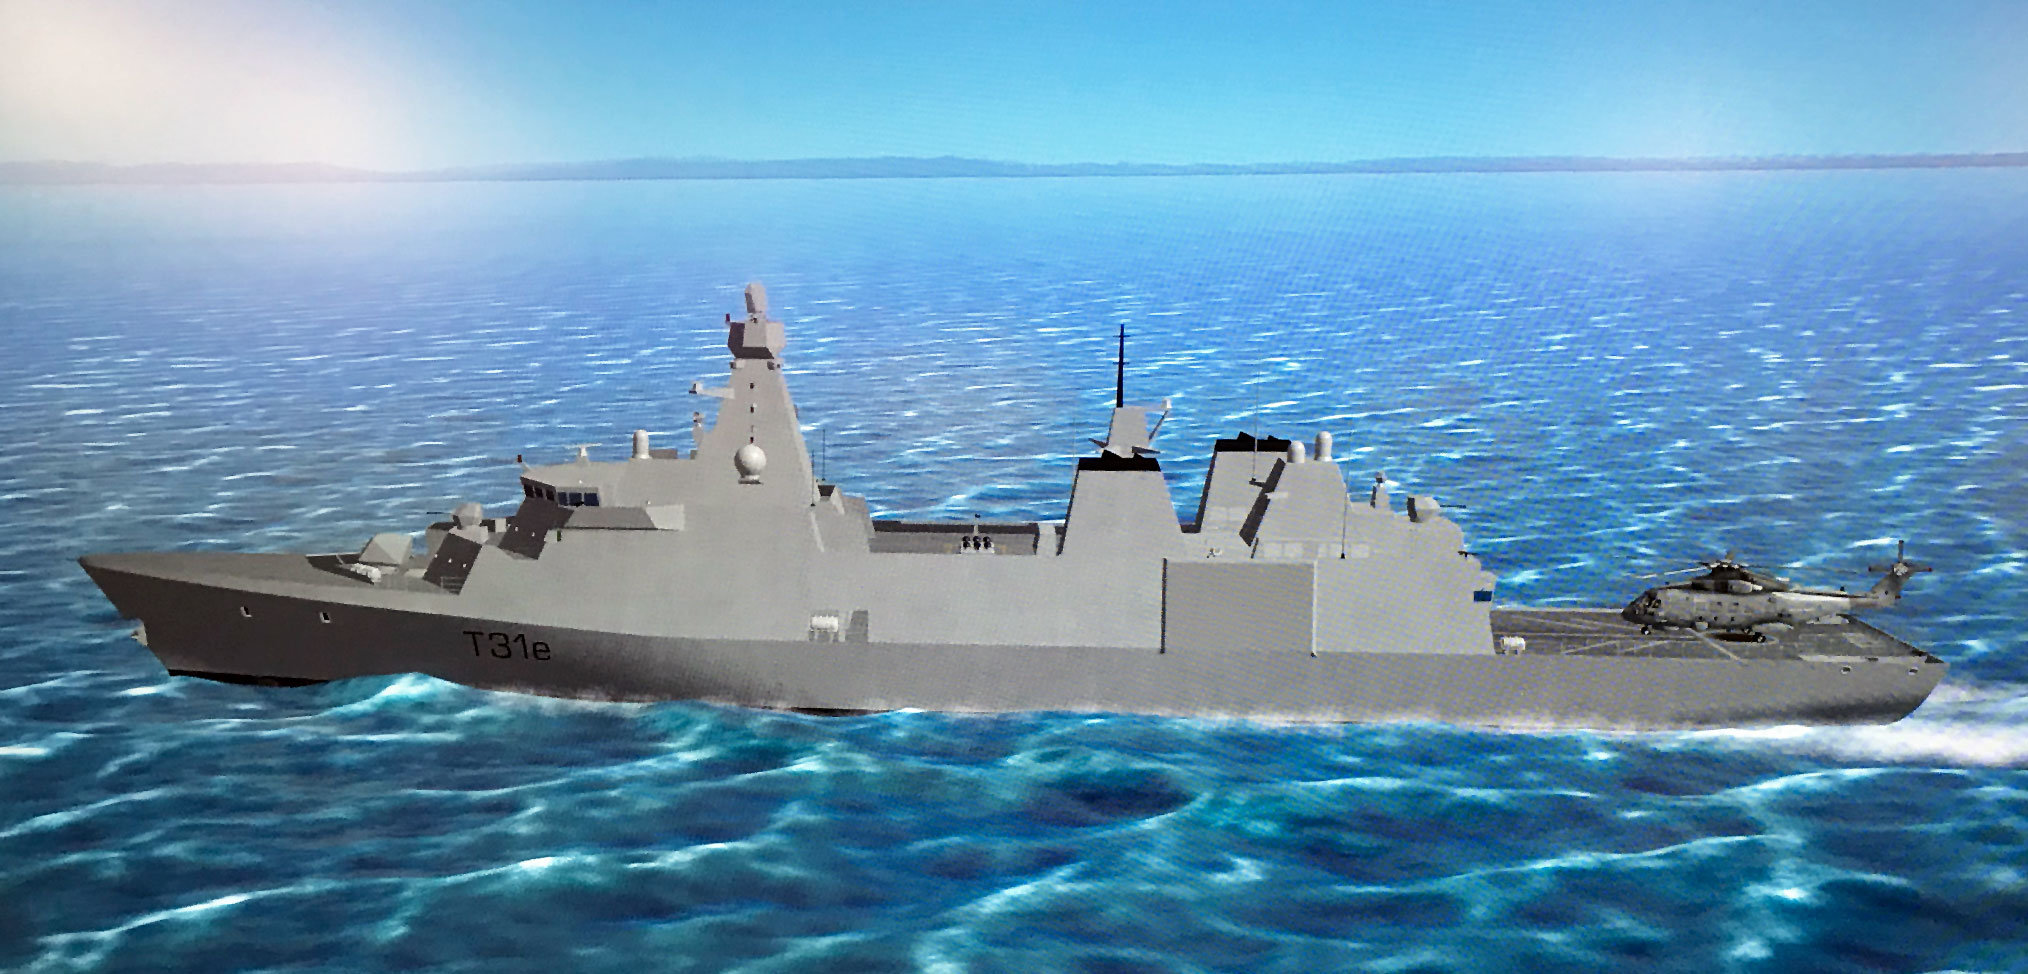 More details of the Royal Navy's Type 31 frigate emerge